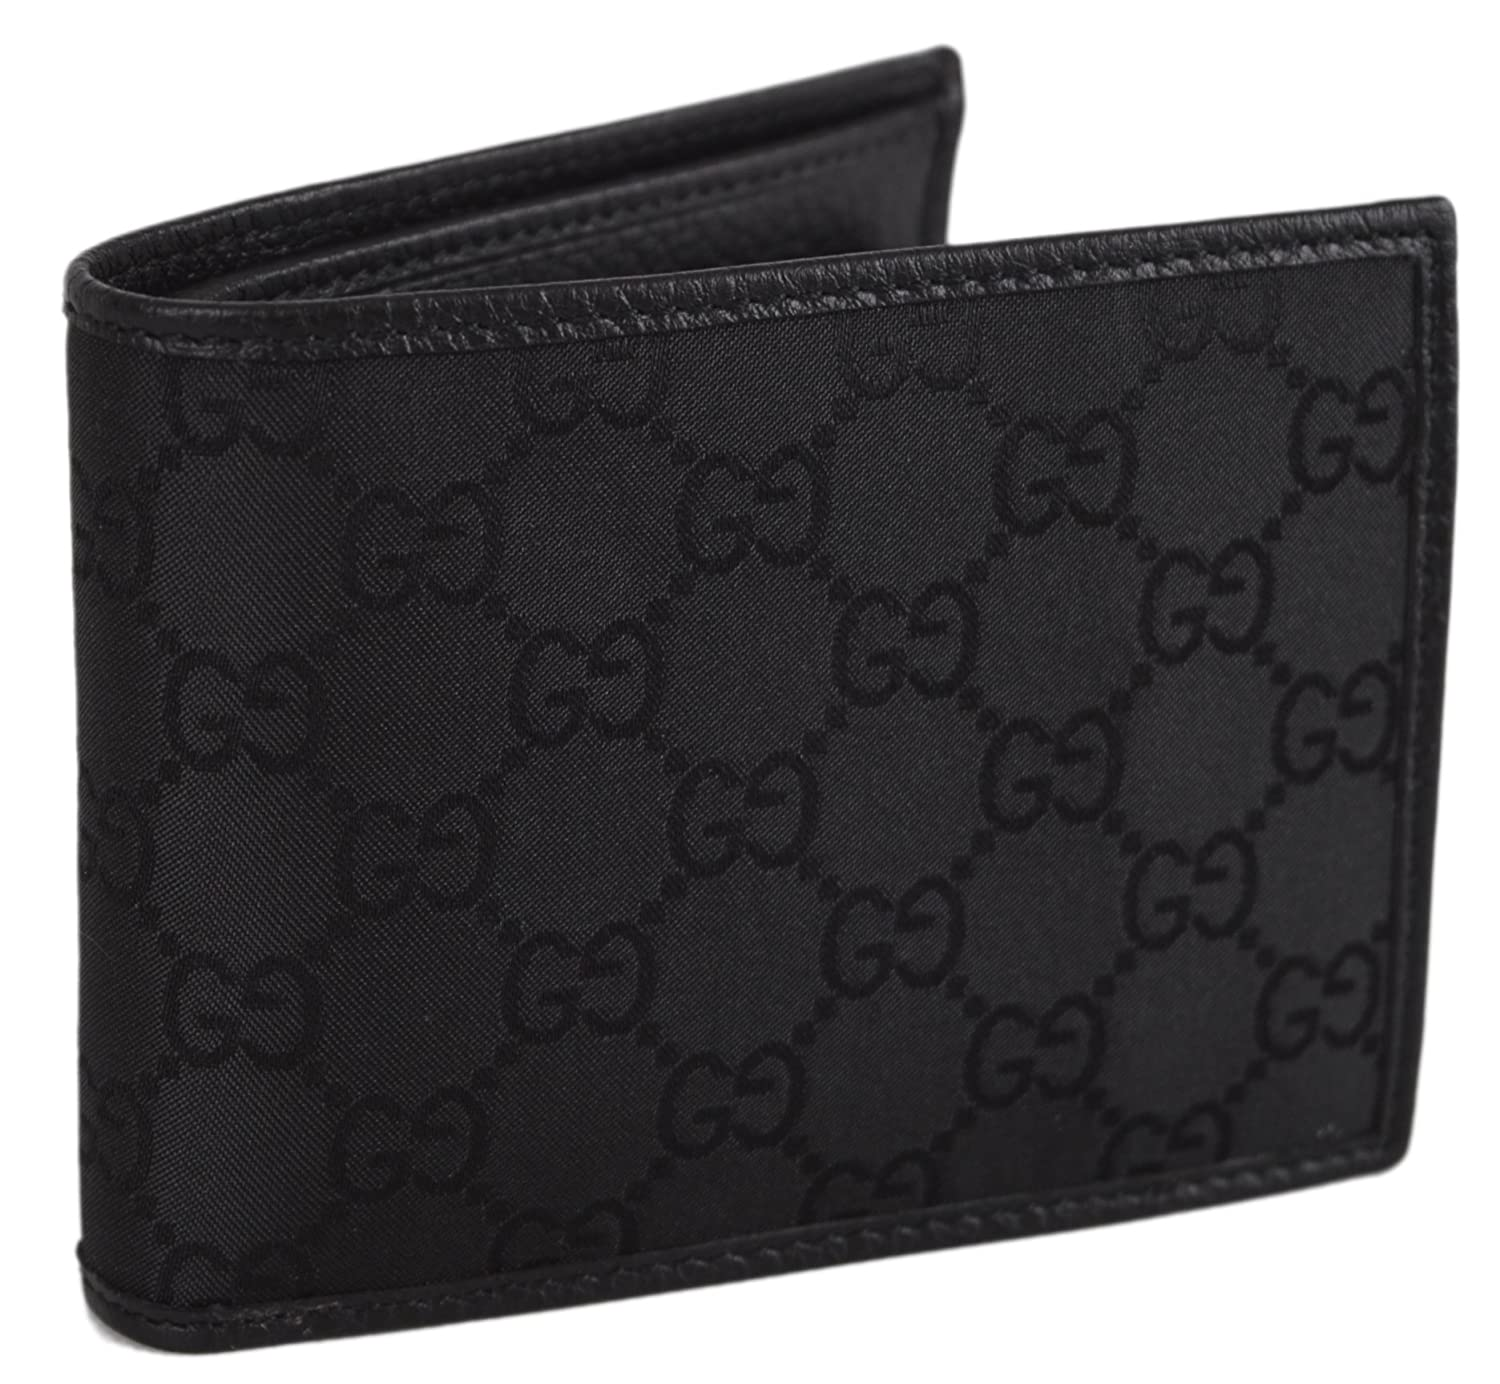 18a44e77729 Amazon.com  Gucci Men s 143384 Black Nylon GG Guccissima Coin Pocket Bifold  Wallet  Clothing